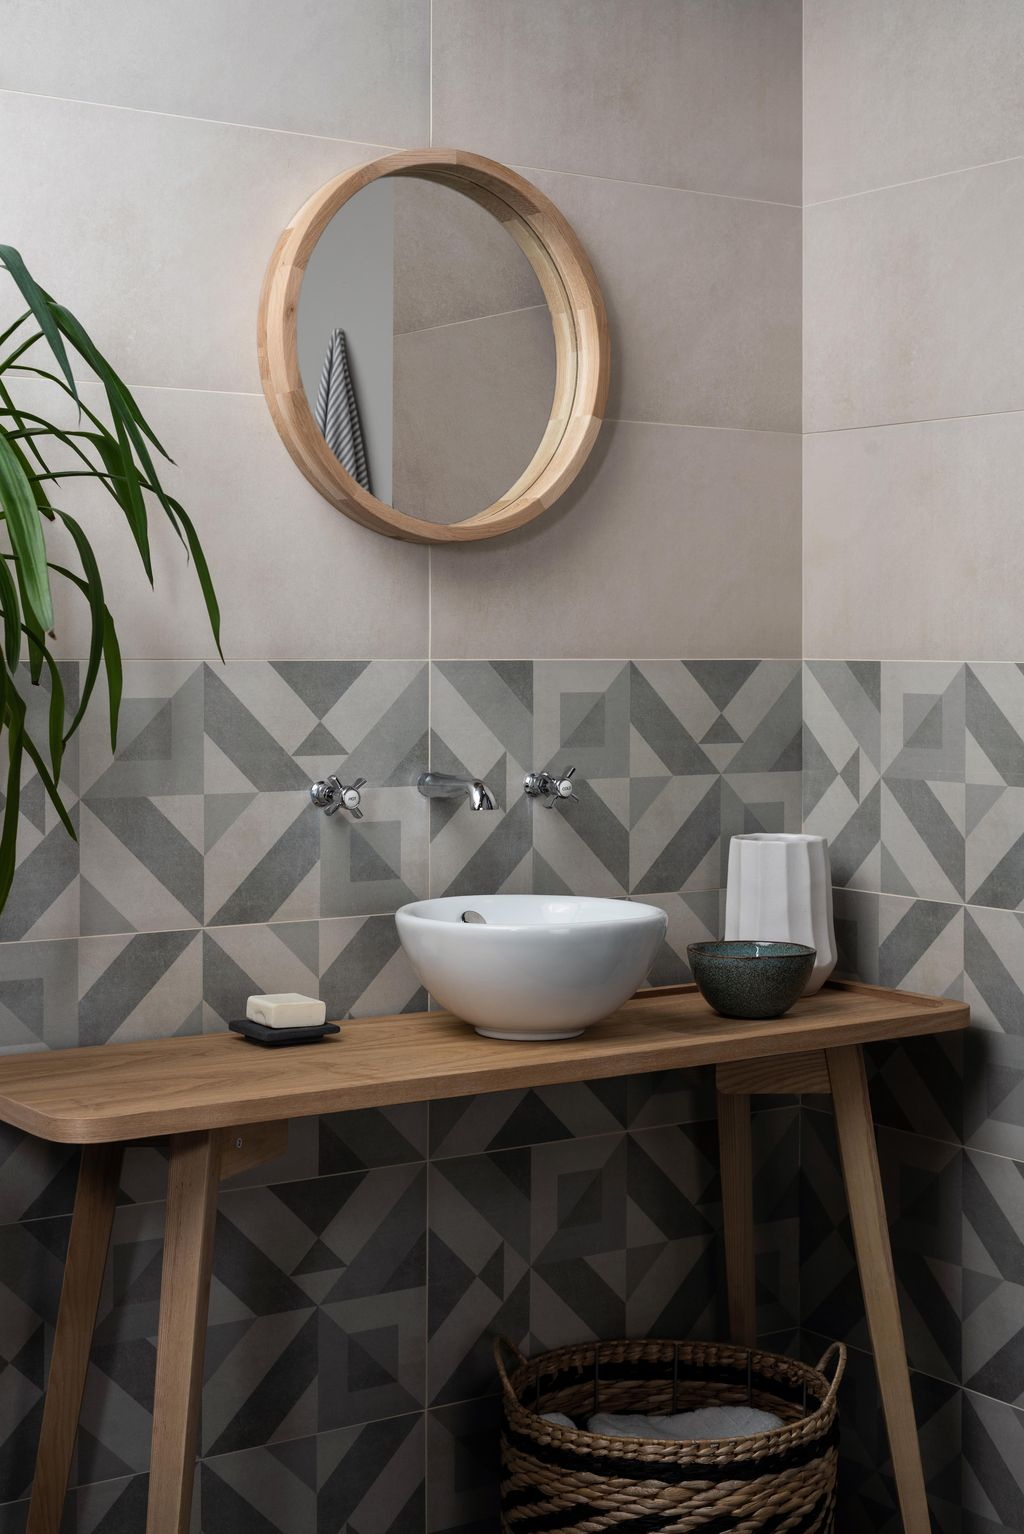 The Best Stone Tile Bathroom Ideas To Decorate Your Bathroom 21